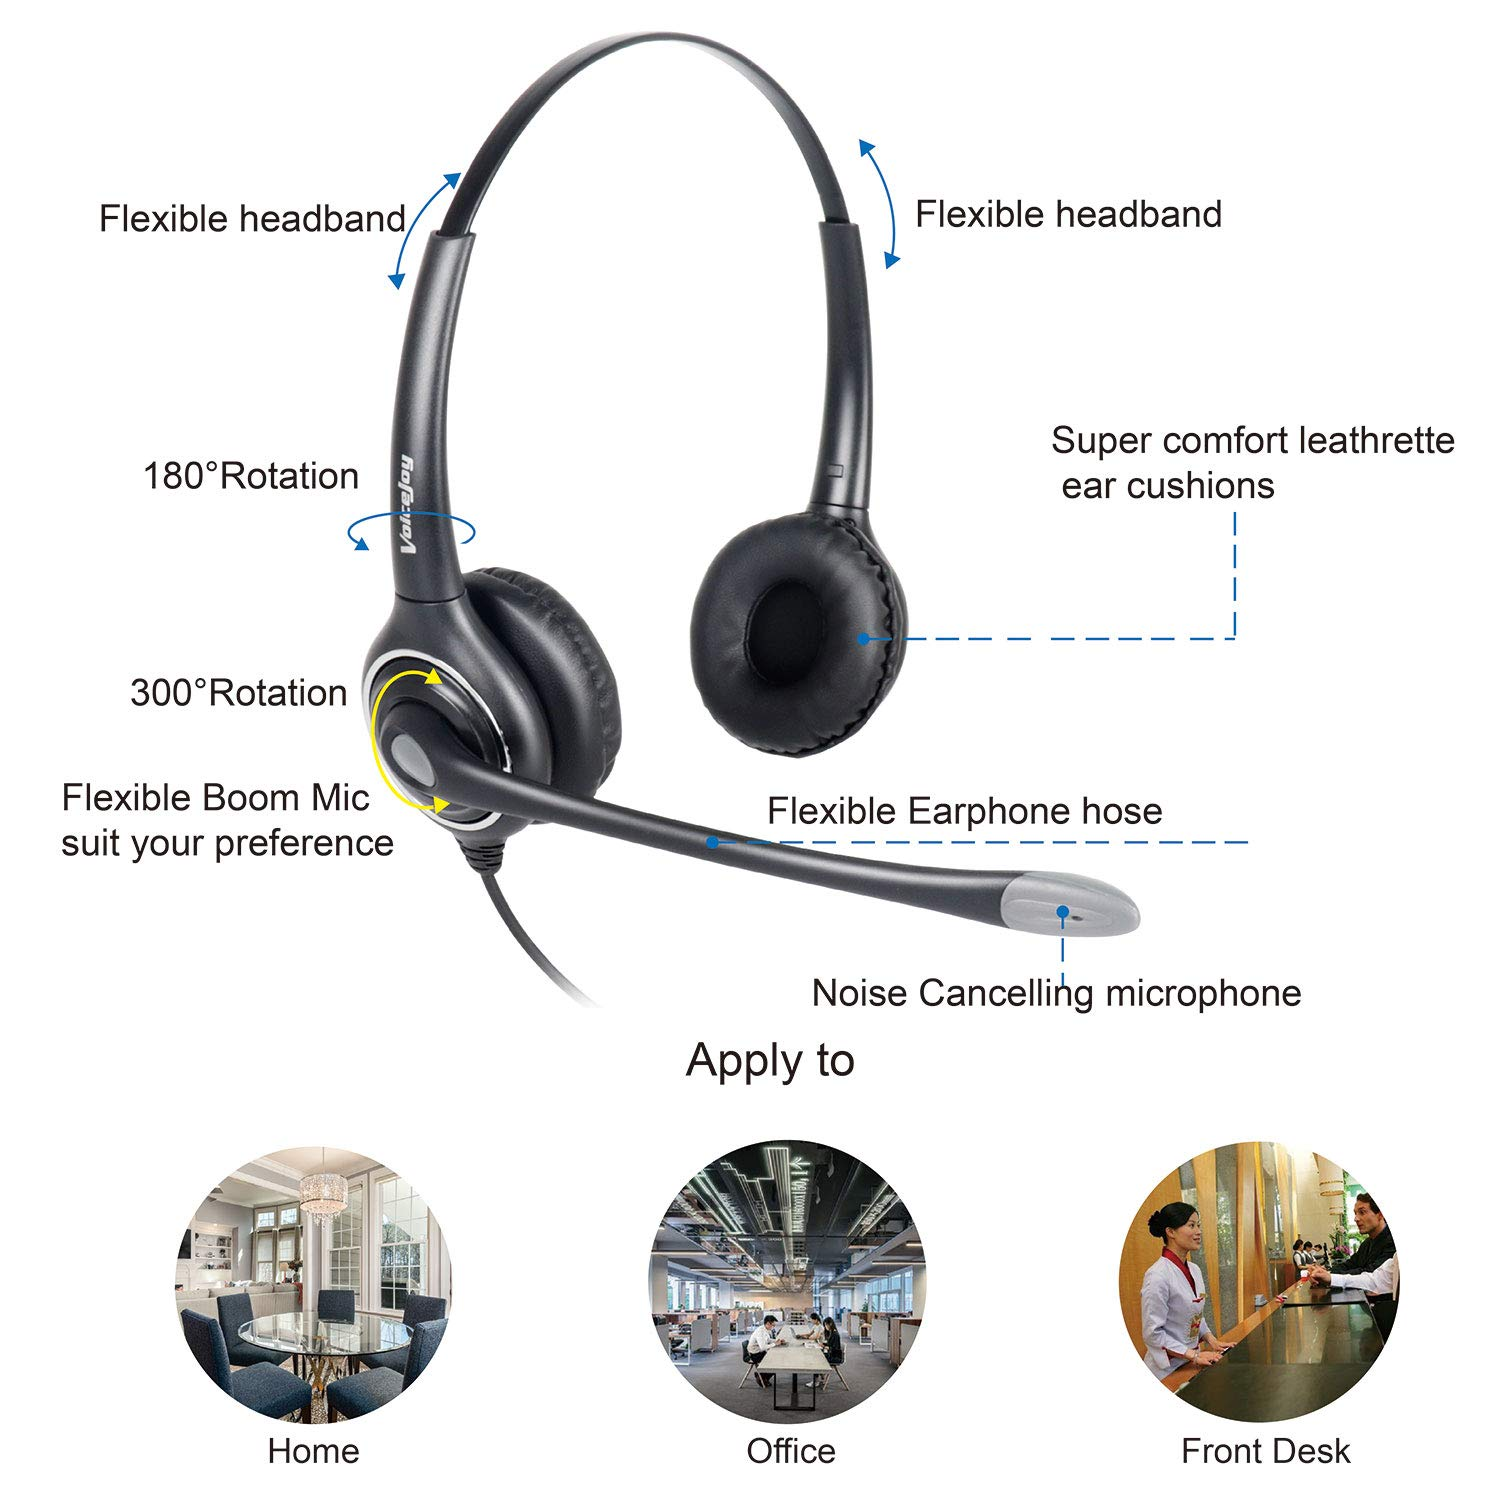 Double Ear Ultra Noise Canceling Call Center//Office Headset /& QD Cable for All Cisco 6900 7800 and 8000 Series Phones and Also Models 7940 7941 7942 7945 7960 7961 7962 7965 7970 7975 etc